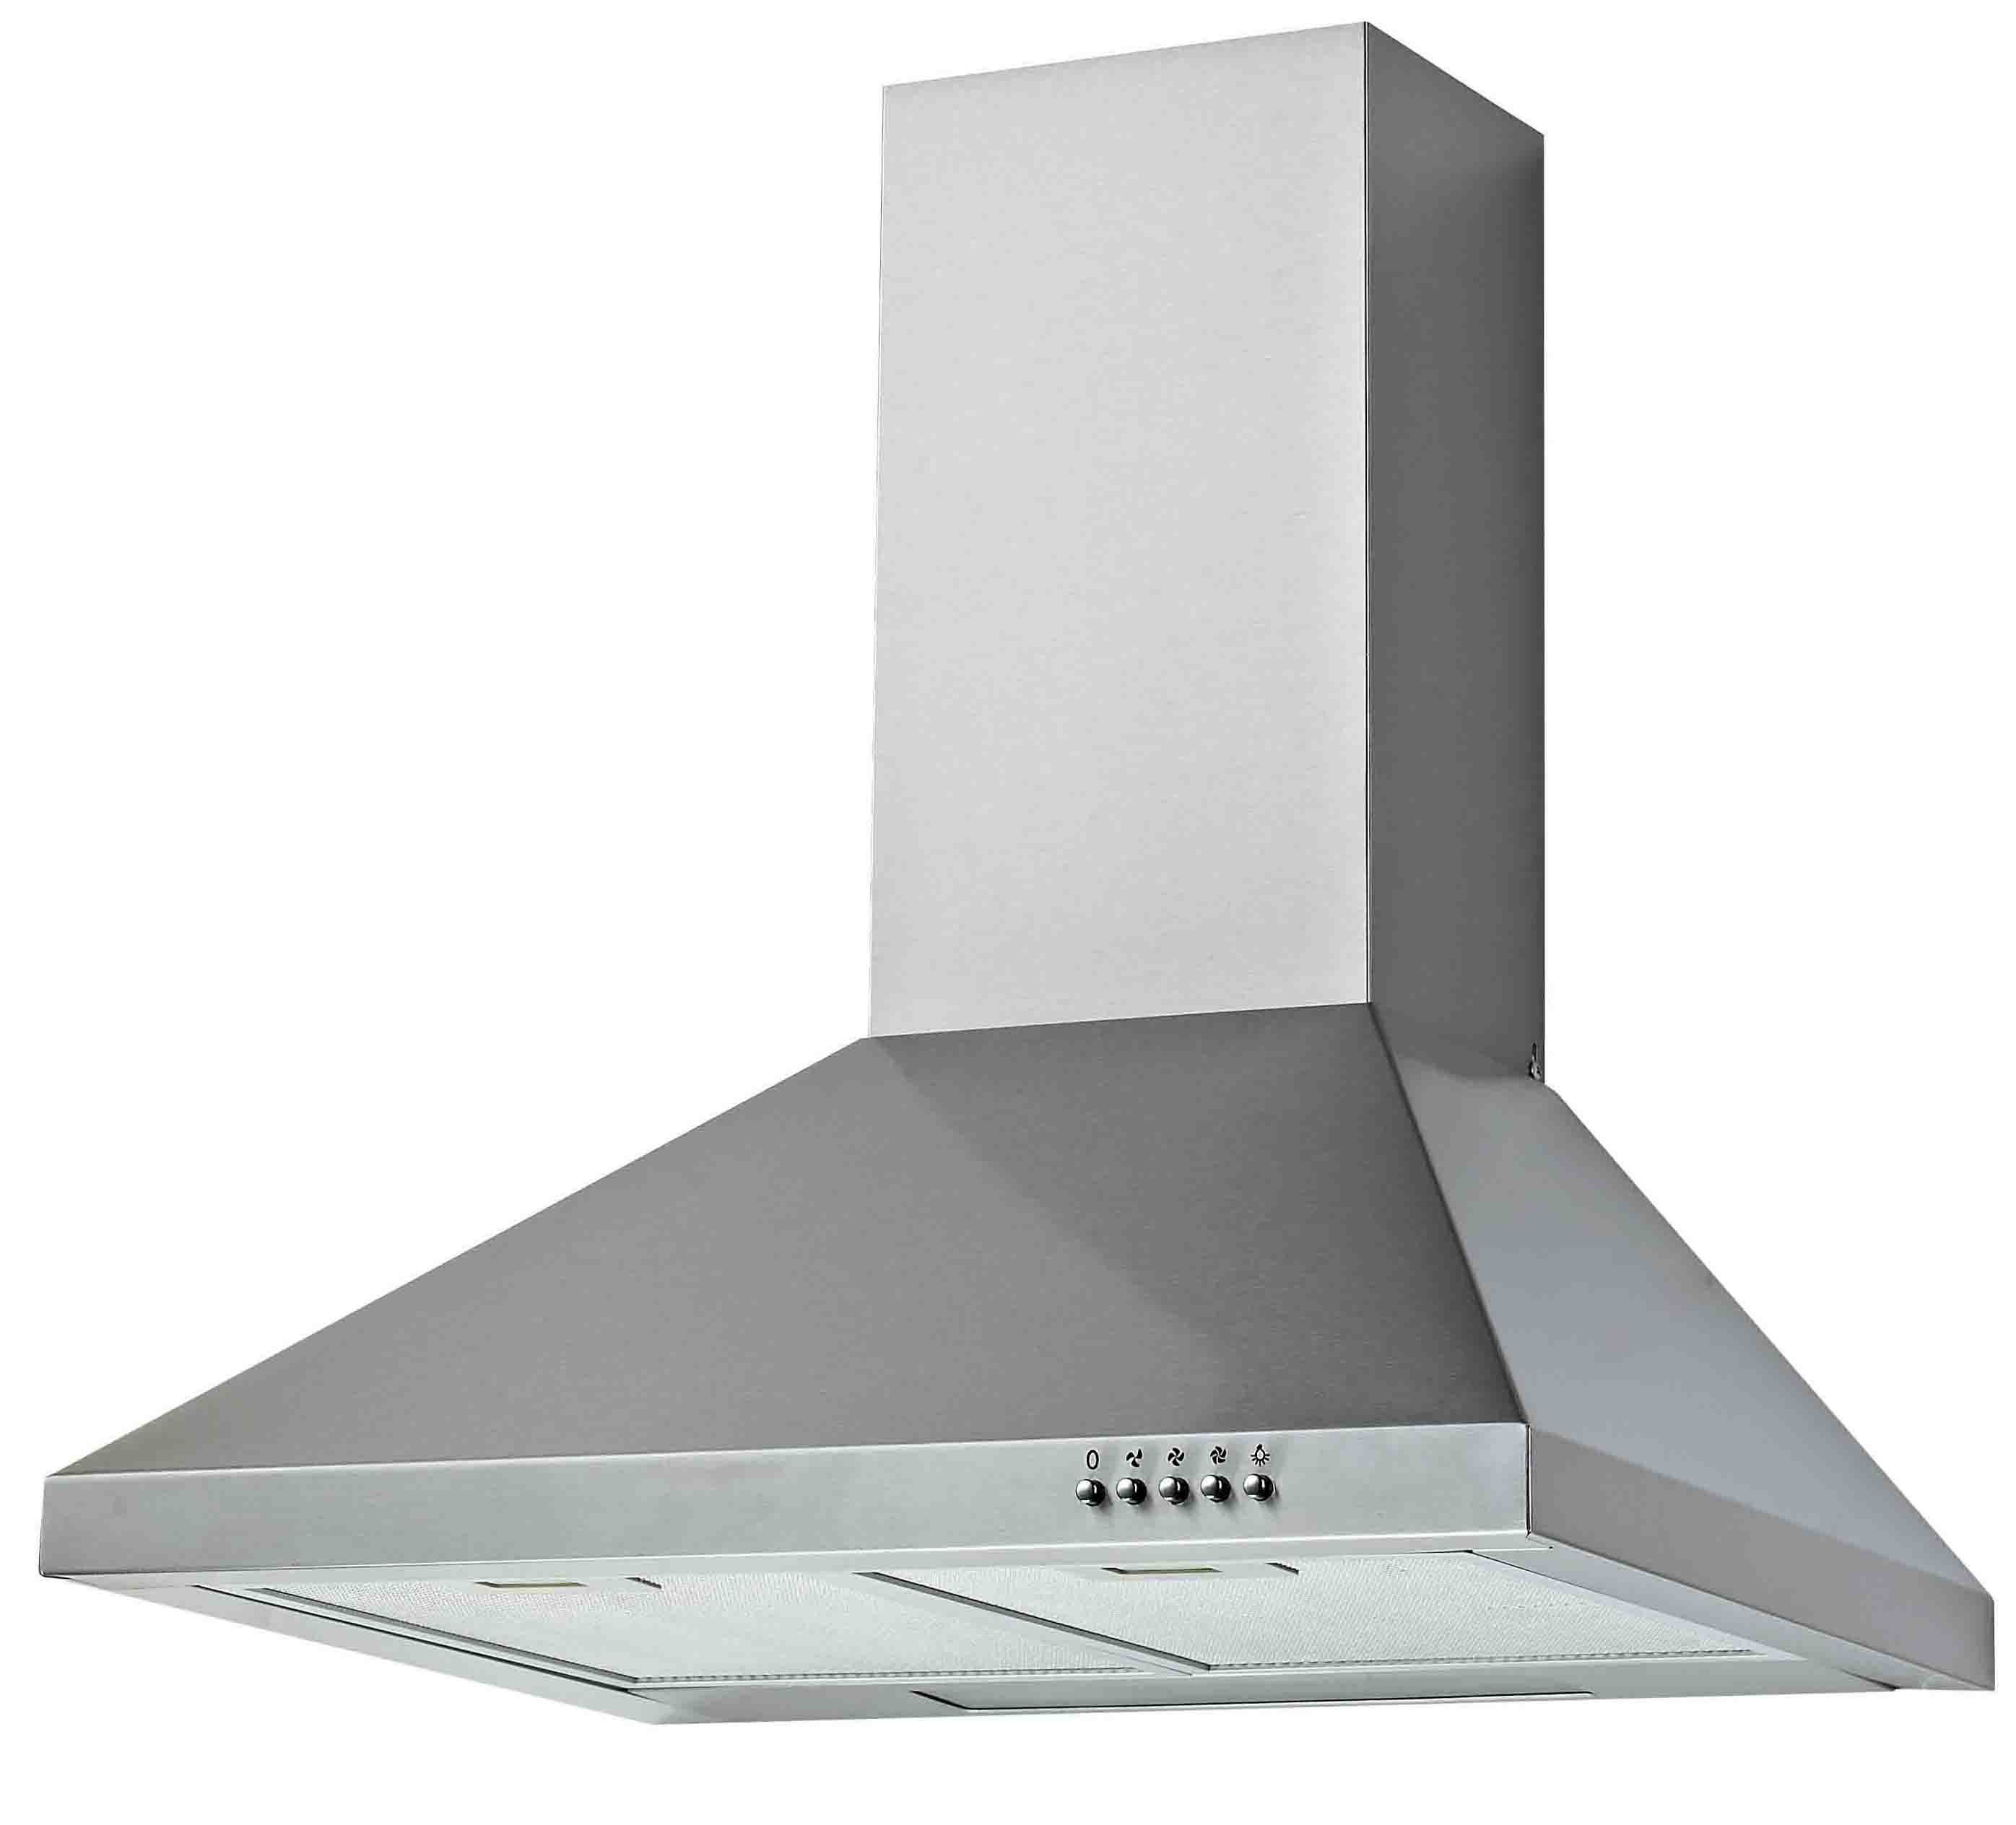 chinese kitchen range hood best way to clean wood cabinets in top ten elegant stainless